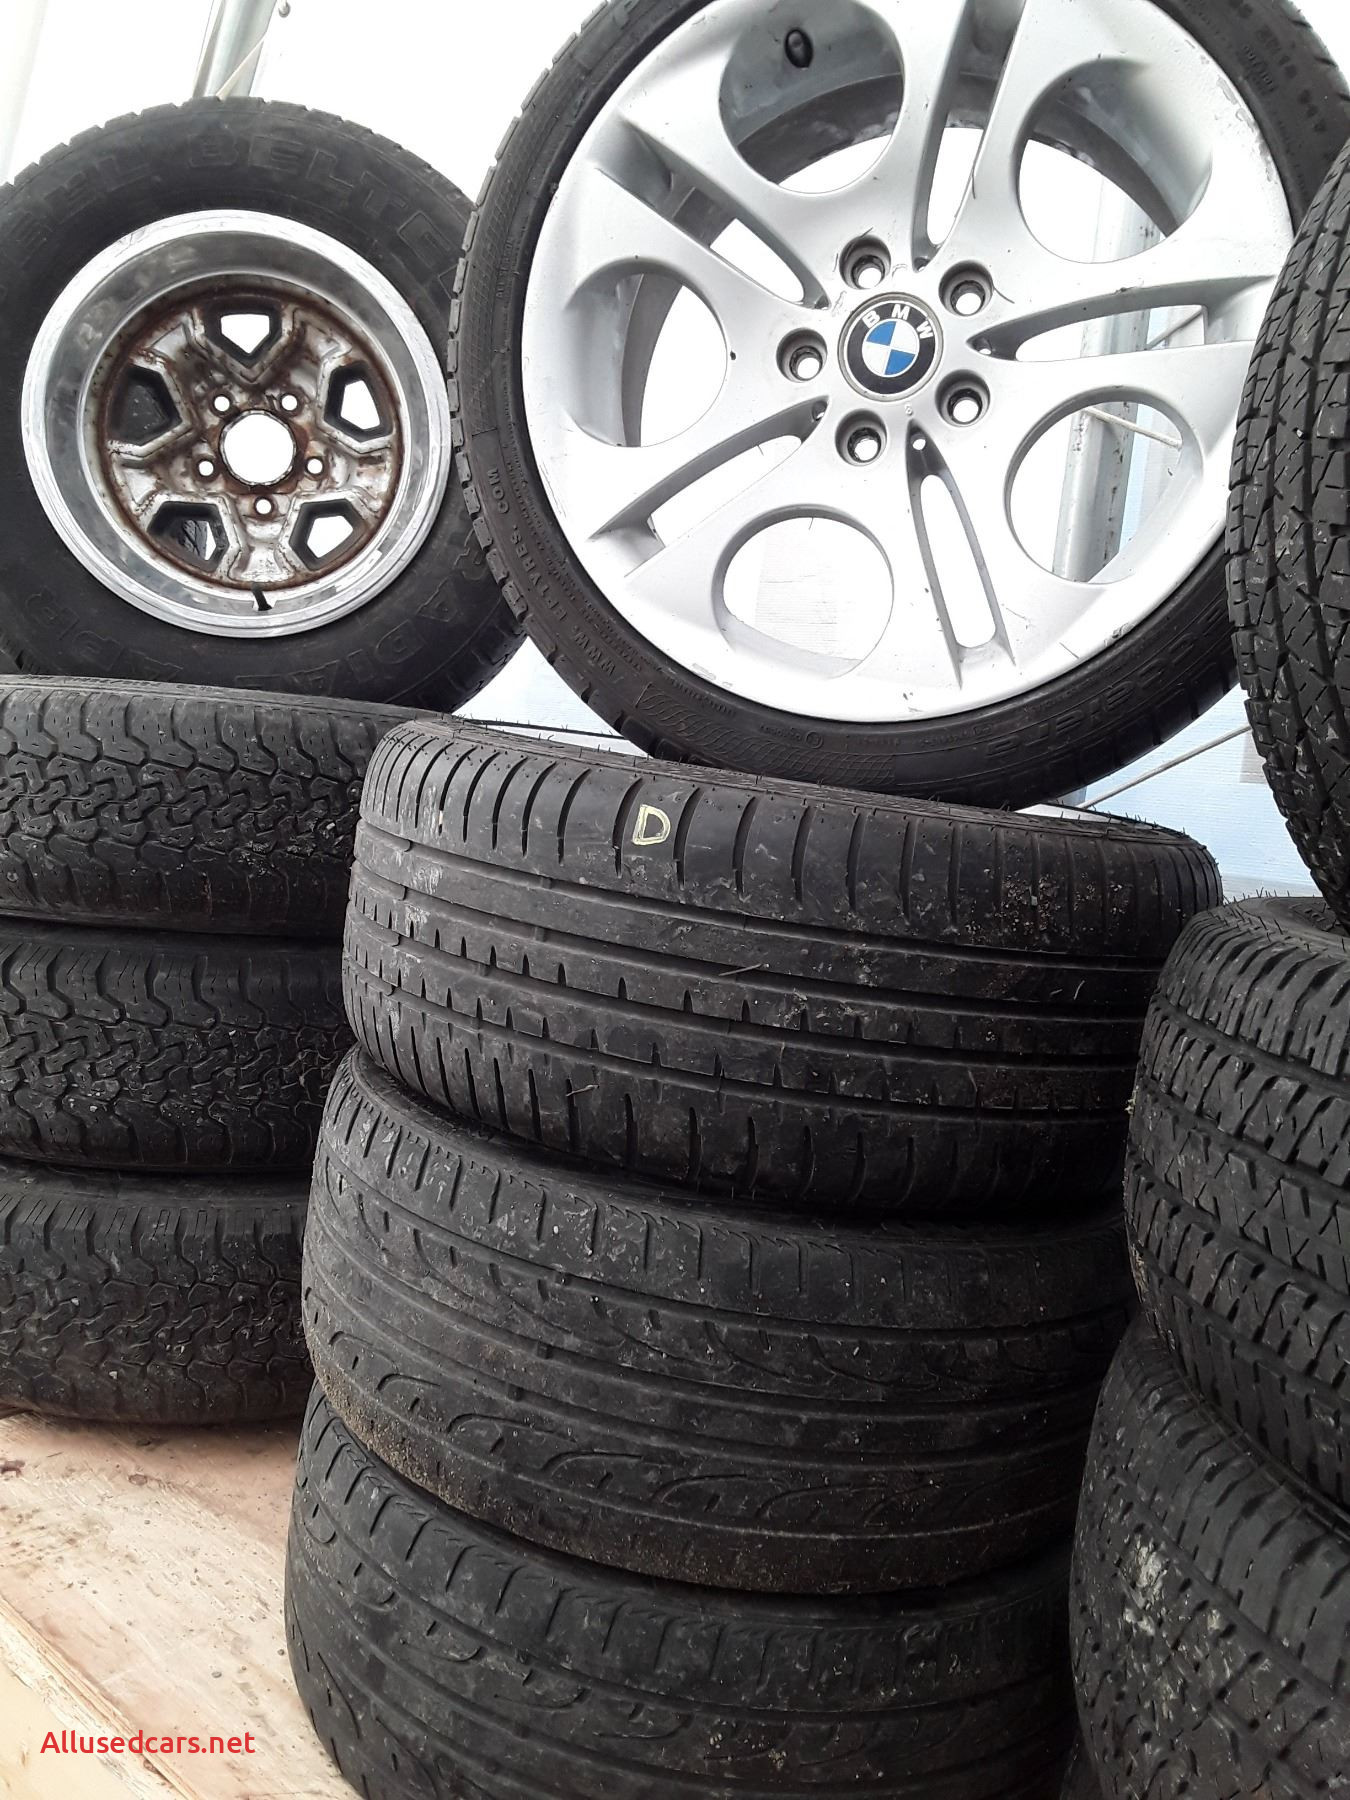 How Long Do Tires Last On Car New 0d Acceiera 255 35zr18 Bmw Rims and Tires